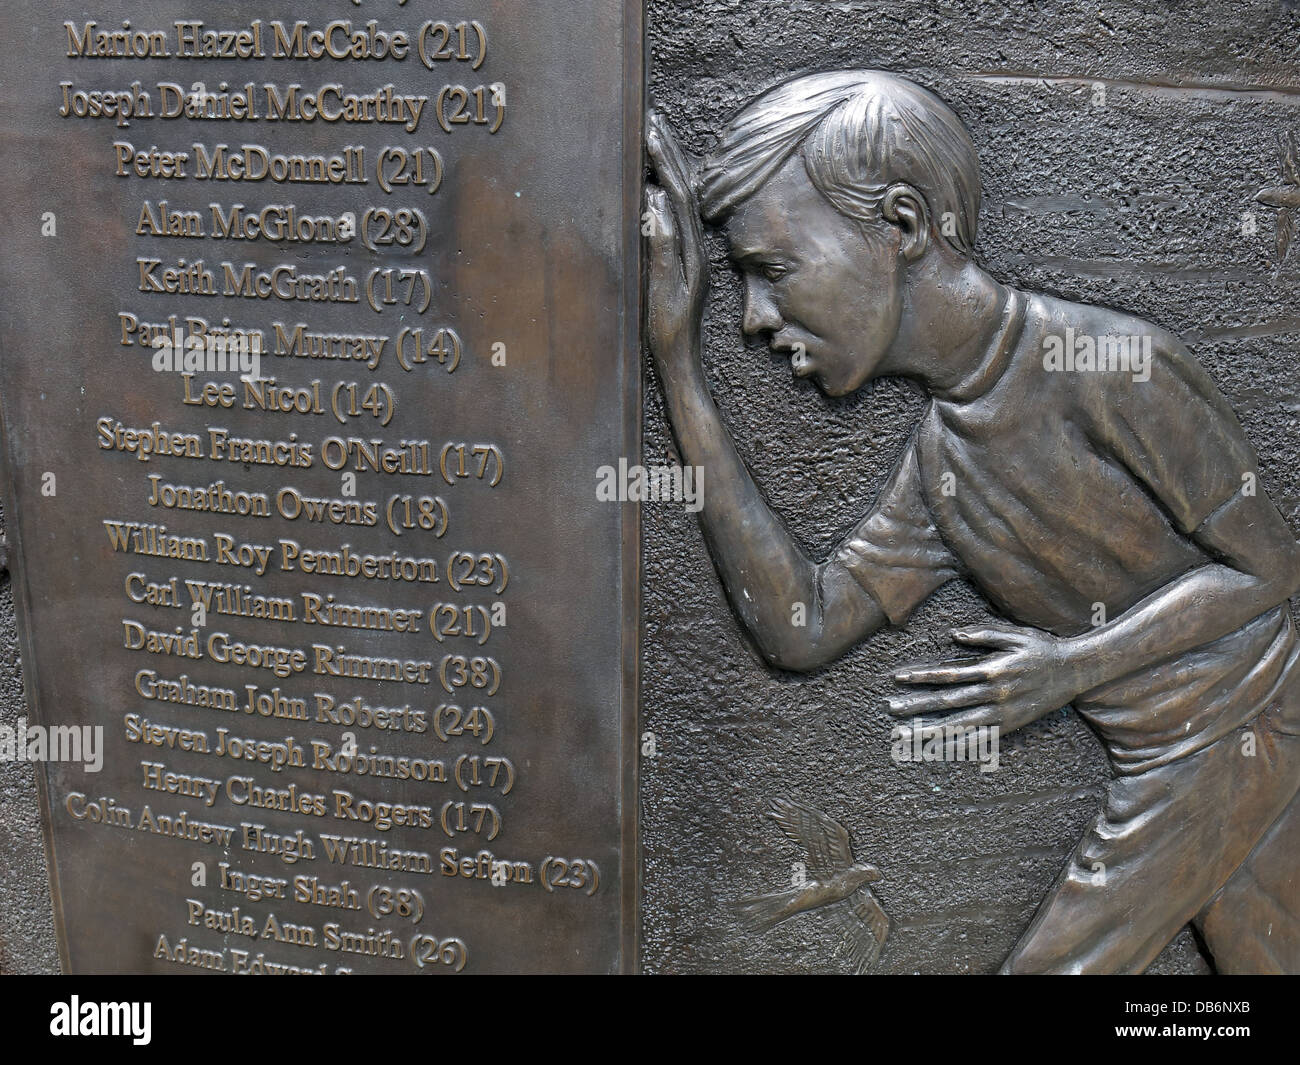 Detail from the 7 foot high circular bronze memorial in the Old Haymarket district of Liverpool - Stock Image